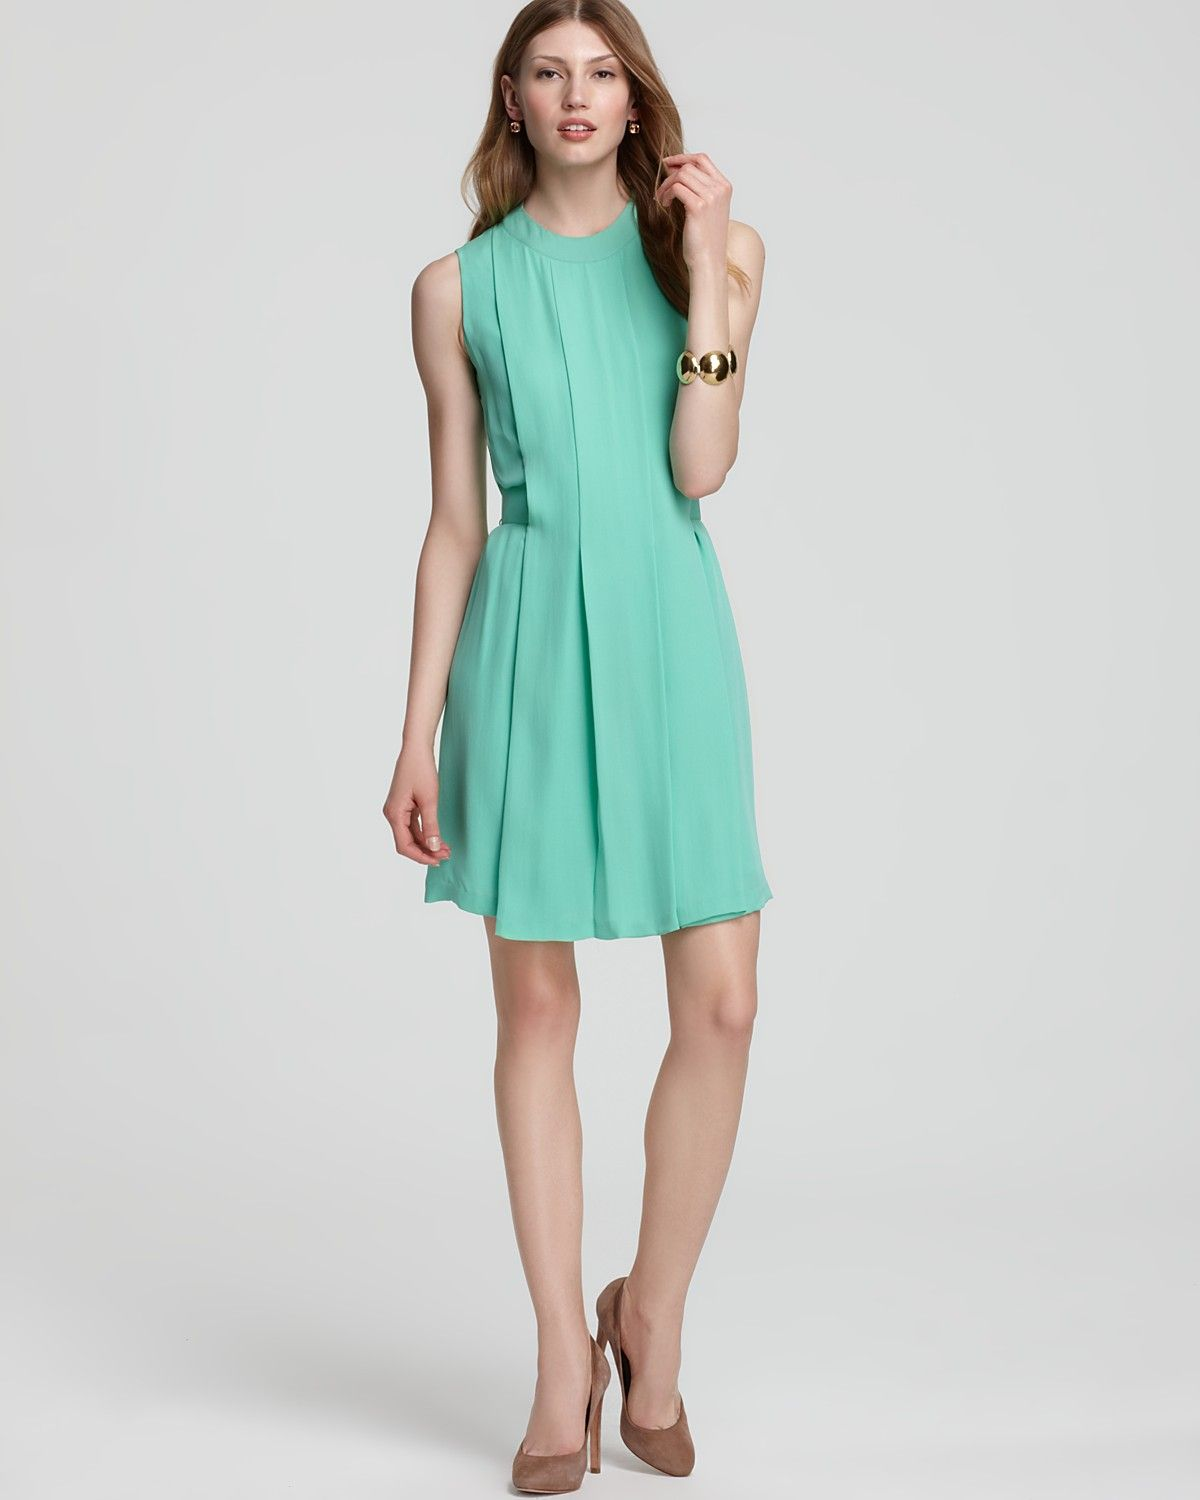 3aa5aa771858 Raoul - my favorite dress ever :-) | My Style | Pinterest | Kate ...